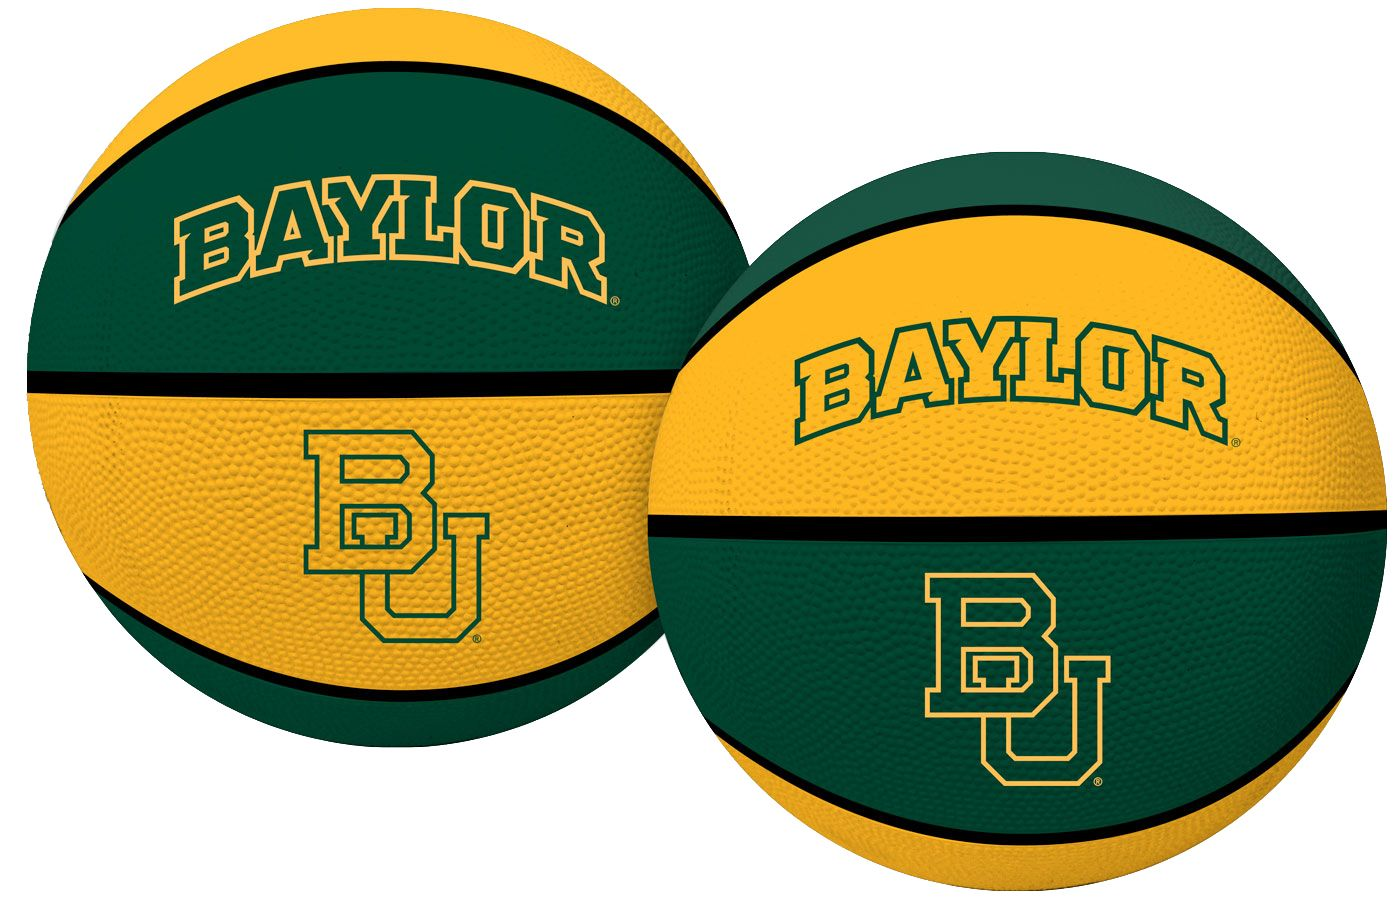 Rawlings Baylor Bears Alley Oop Youth-Sized Basketball